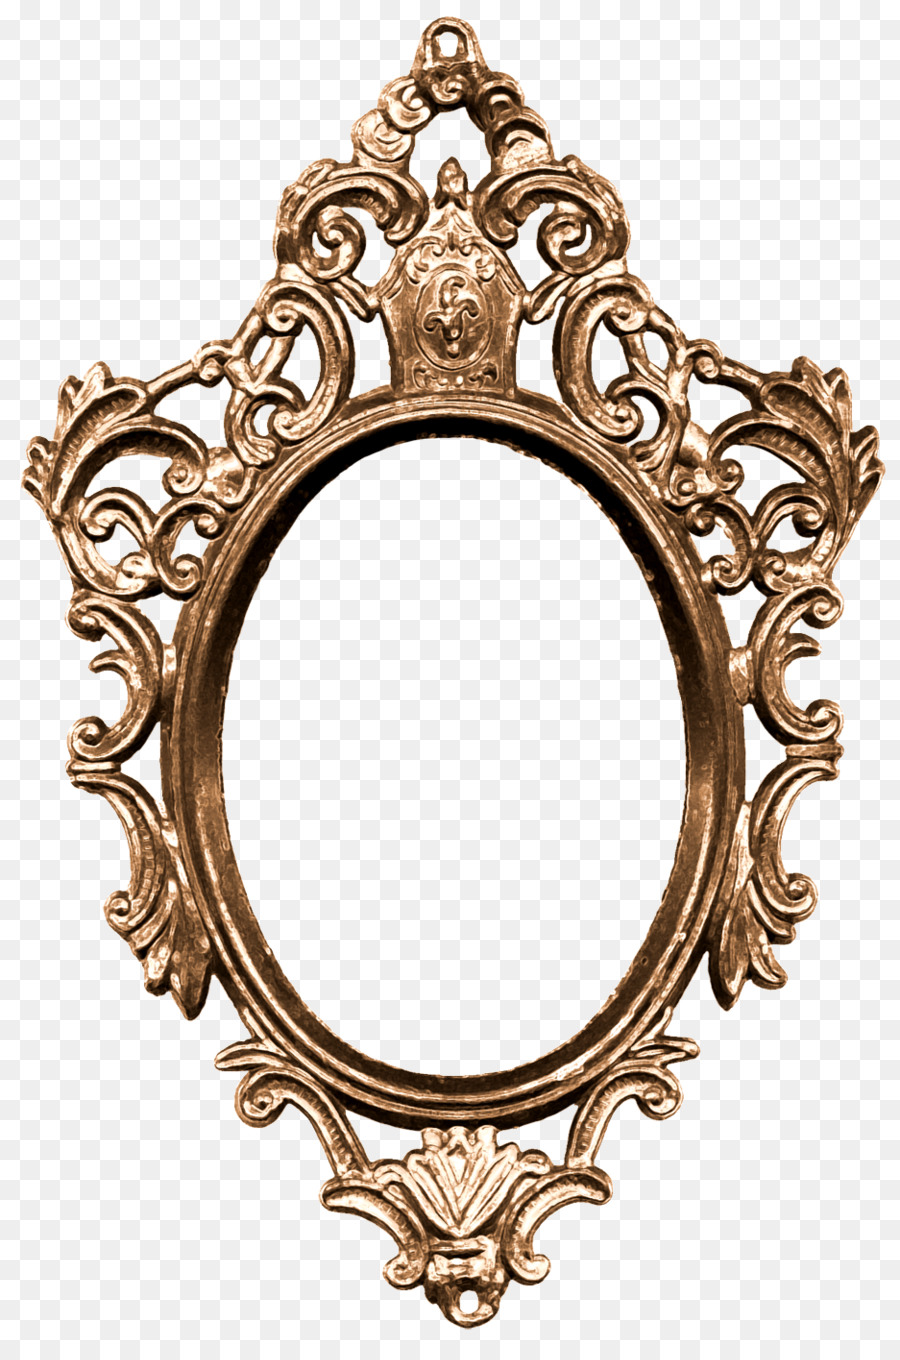 Magic Mirror Picture Frames Ornament - mirror png download - 937 ...